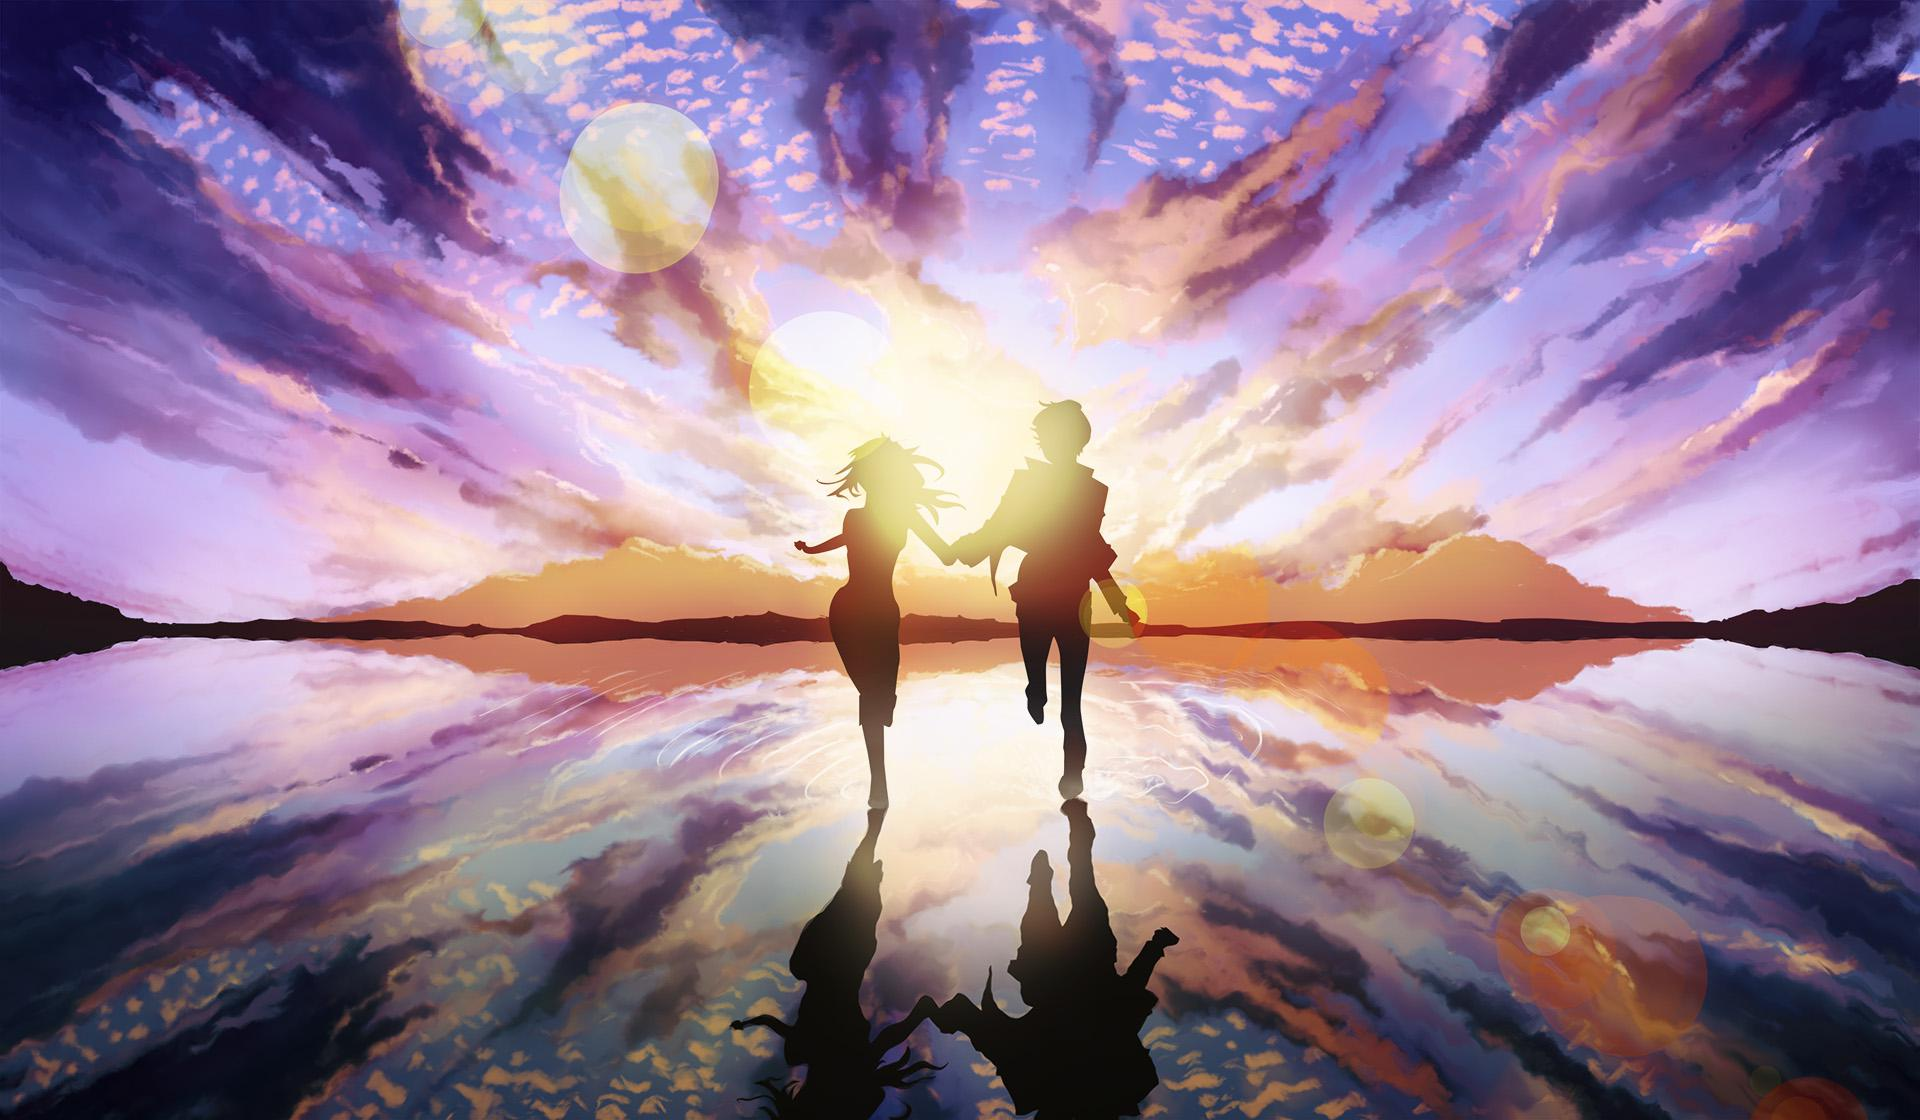 Animated Happy New Year D Hd Couple Love Art Wallpaper Download Free 143889